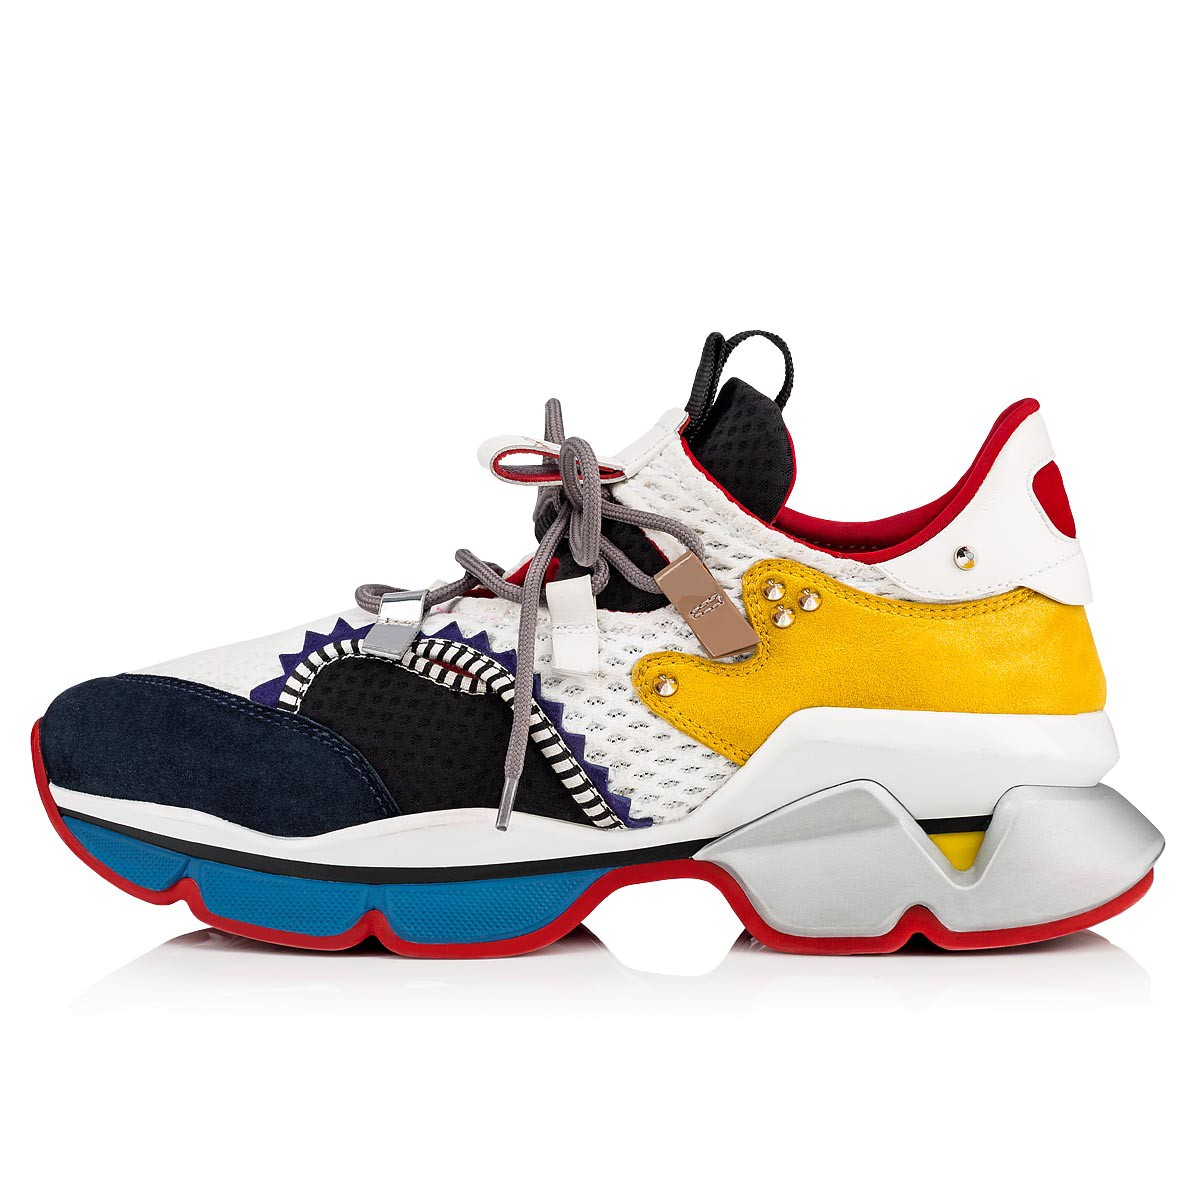 メンズシューズ - Red-runner Men's Flat - Christian Louboutin